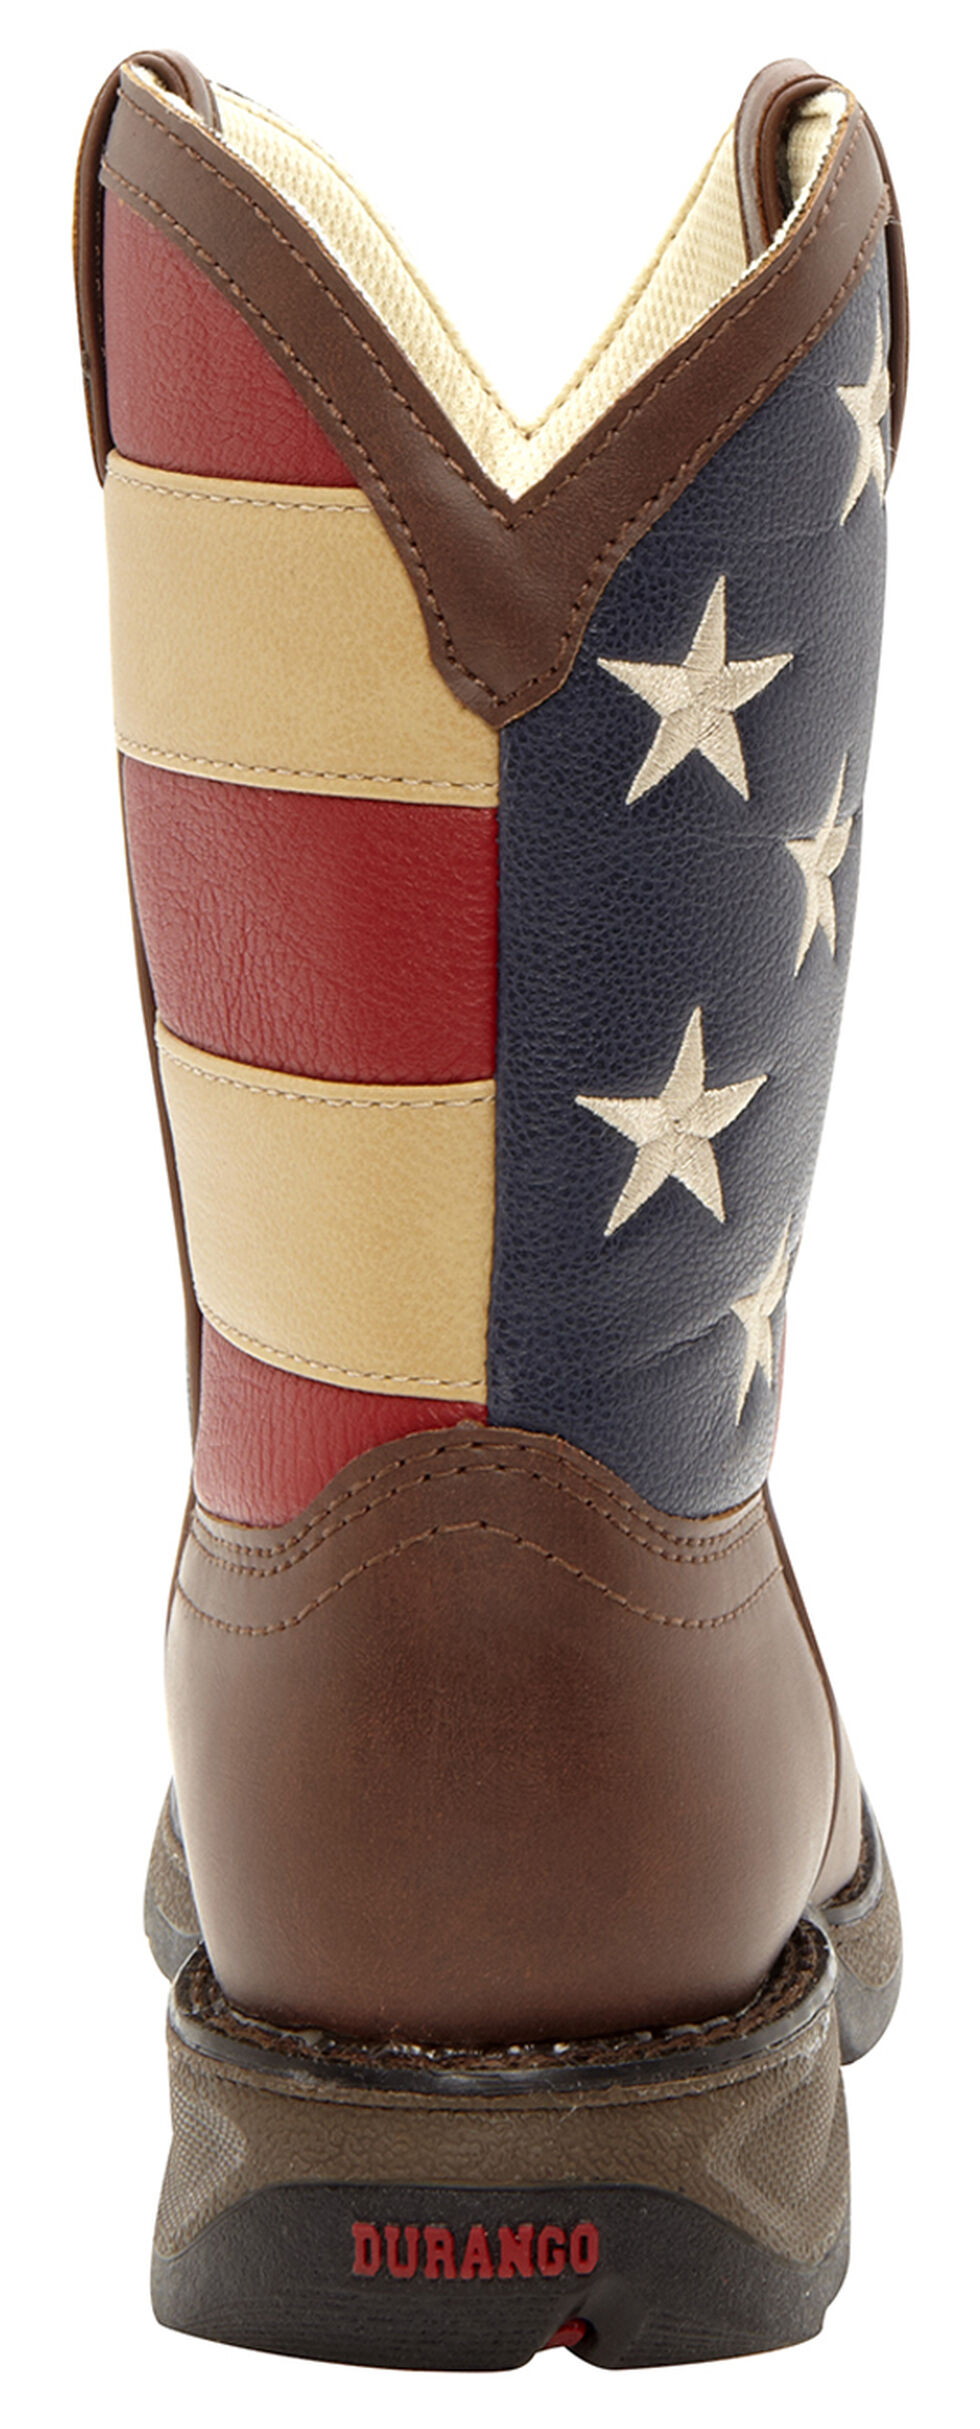 Durango Youth Boys' American Flag Western Boots, Brown, hi-res